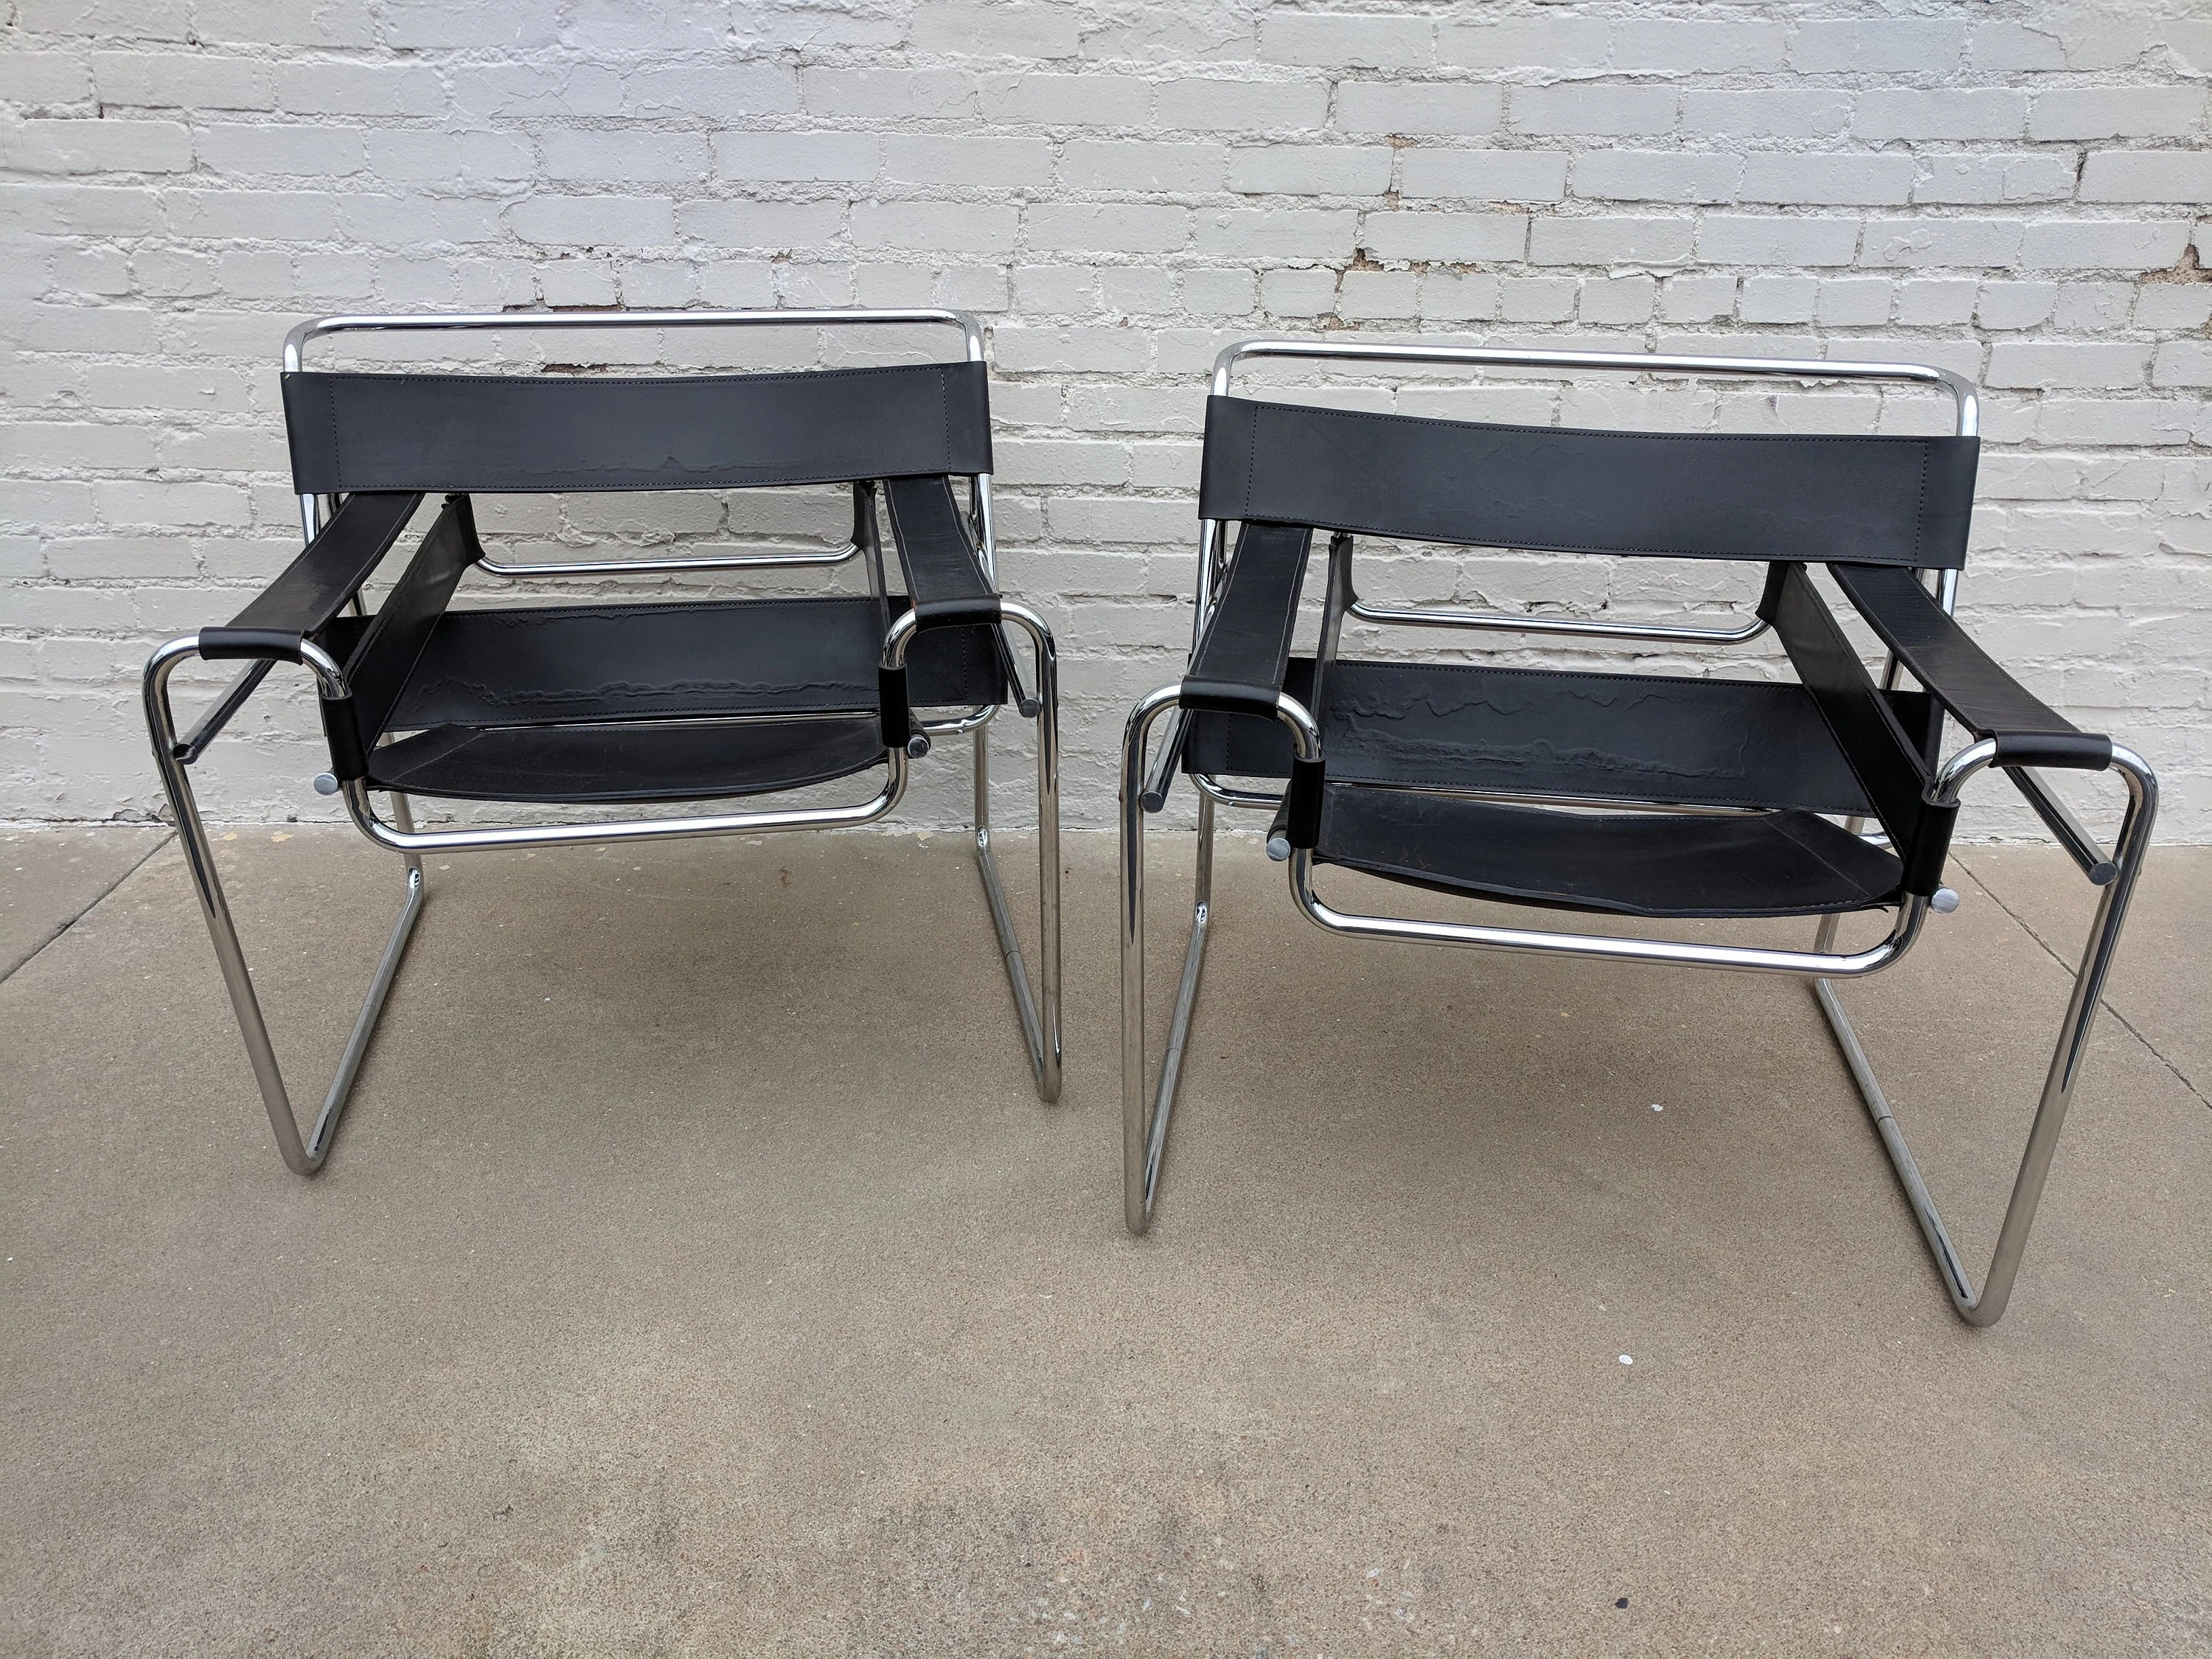 breuer chairs for sale bedroom chair comfortable marcel etsy mid century modern style wassily